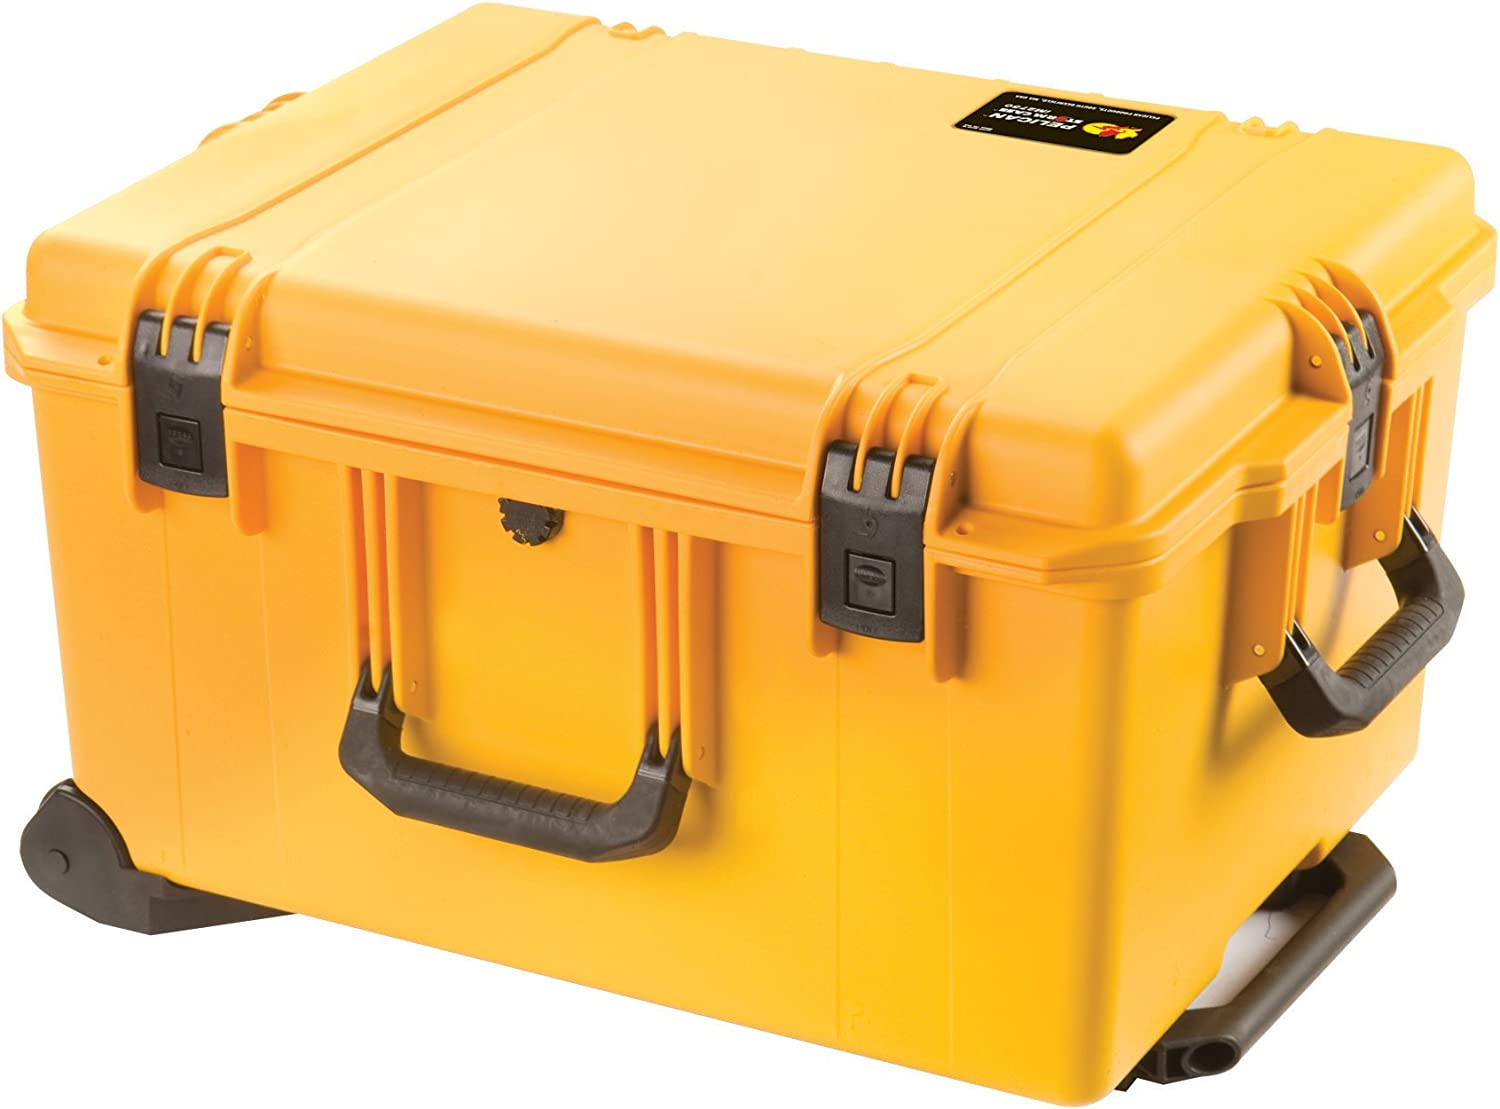 Waterproof Case (Dry Box)   Pelican Storm iM2750 Case with Foam (Yellow)